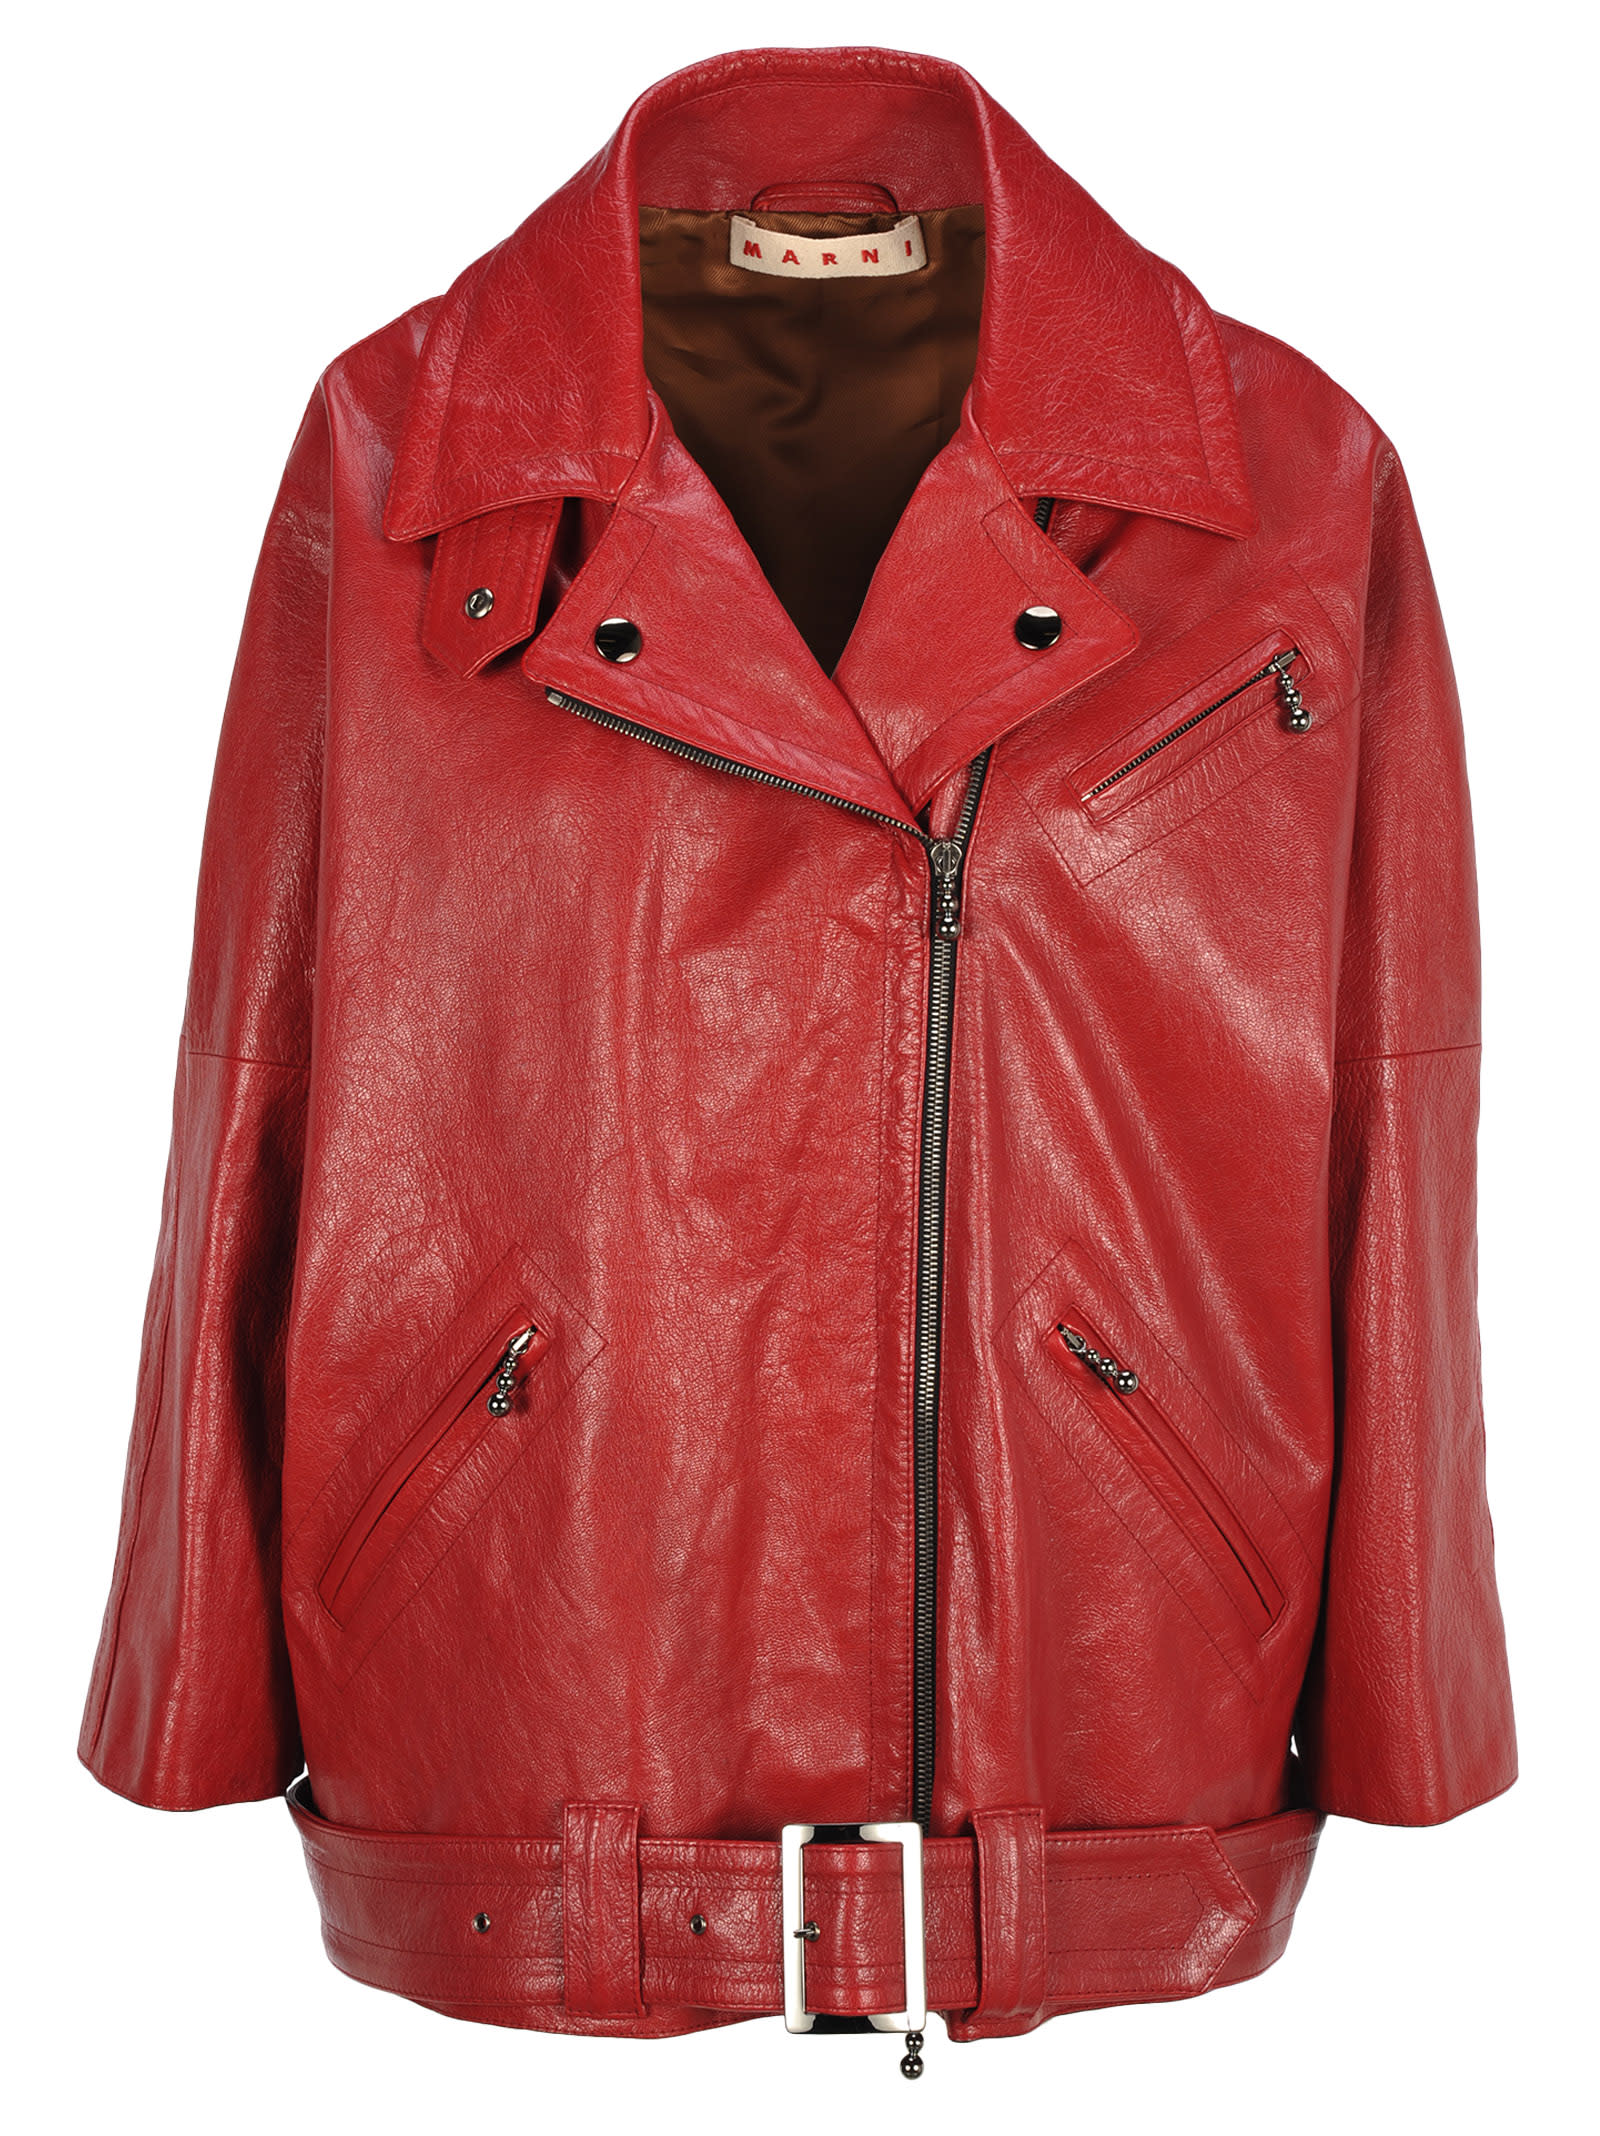 Marni Marni Leather Biker Jacket